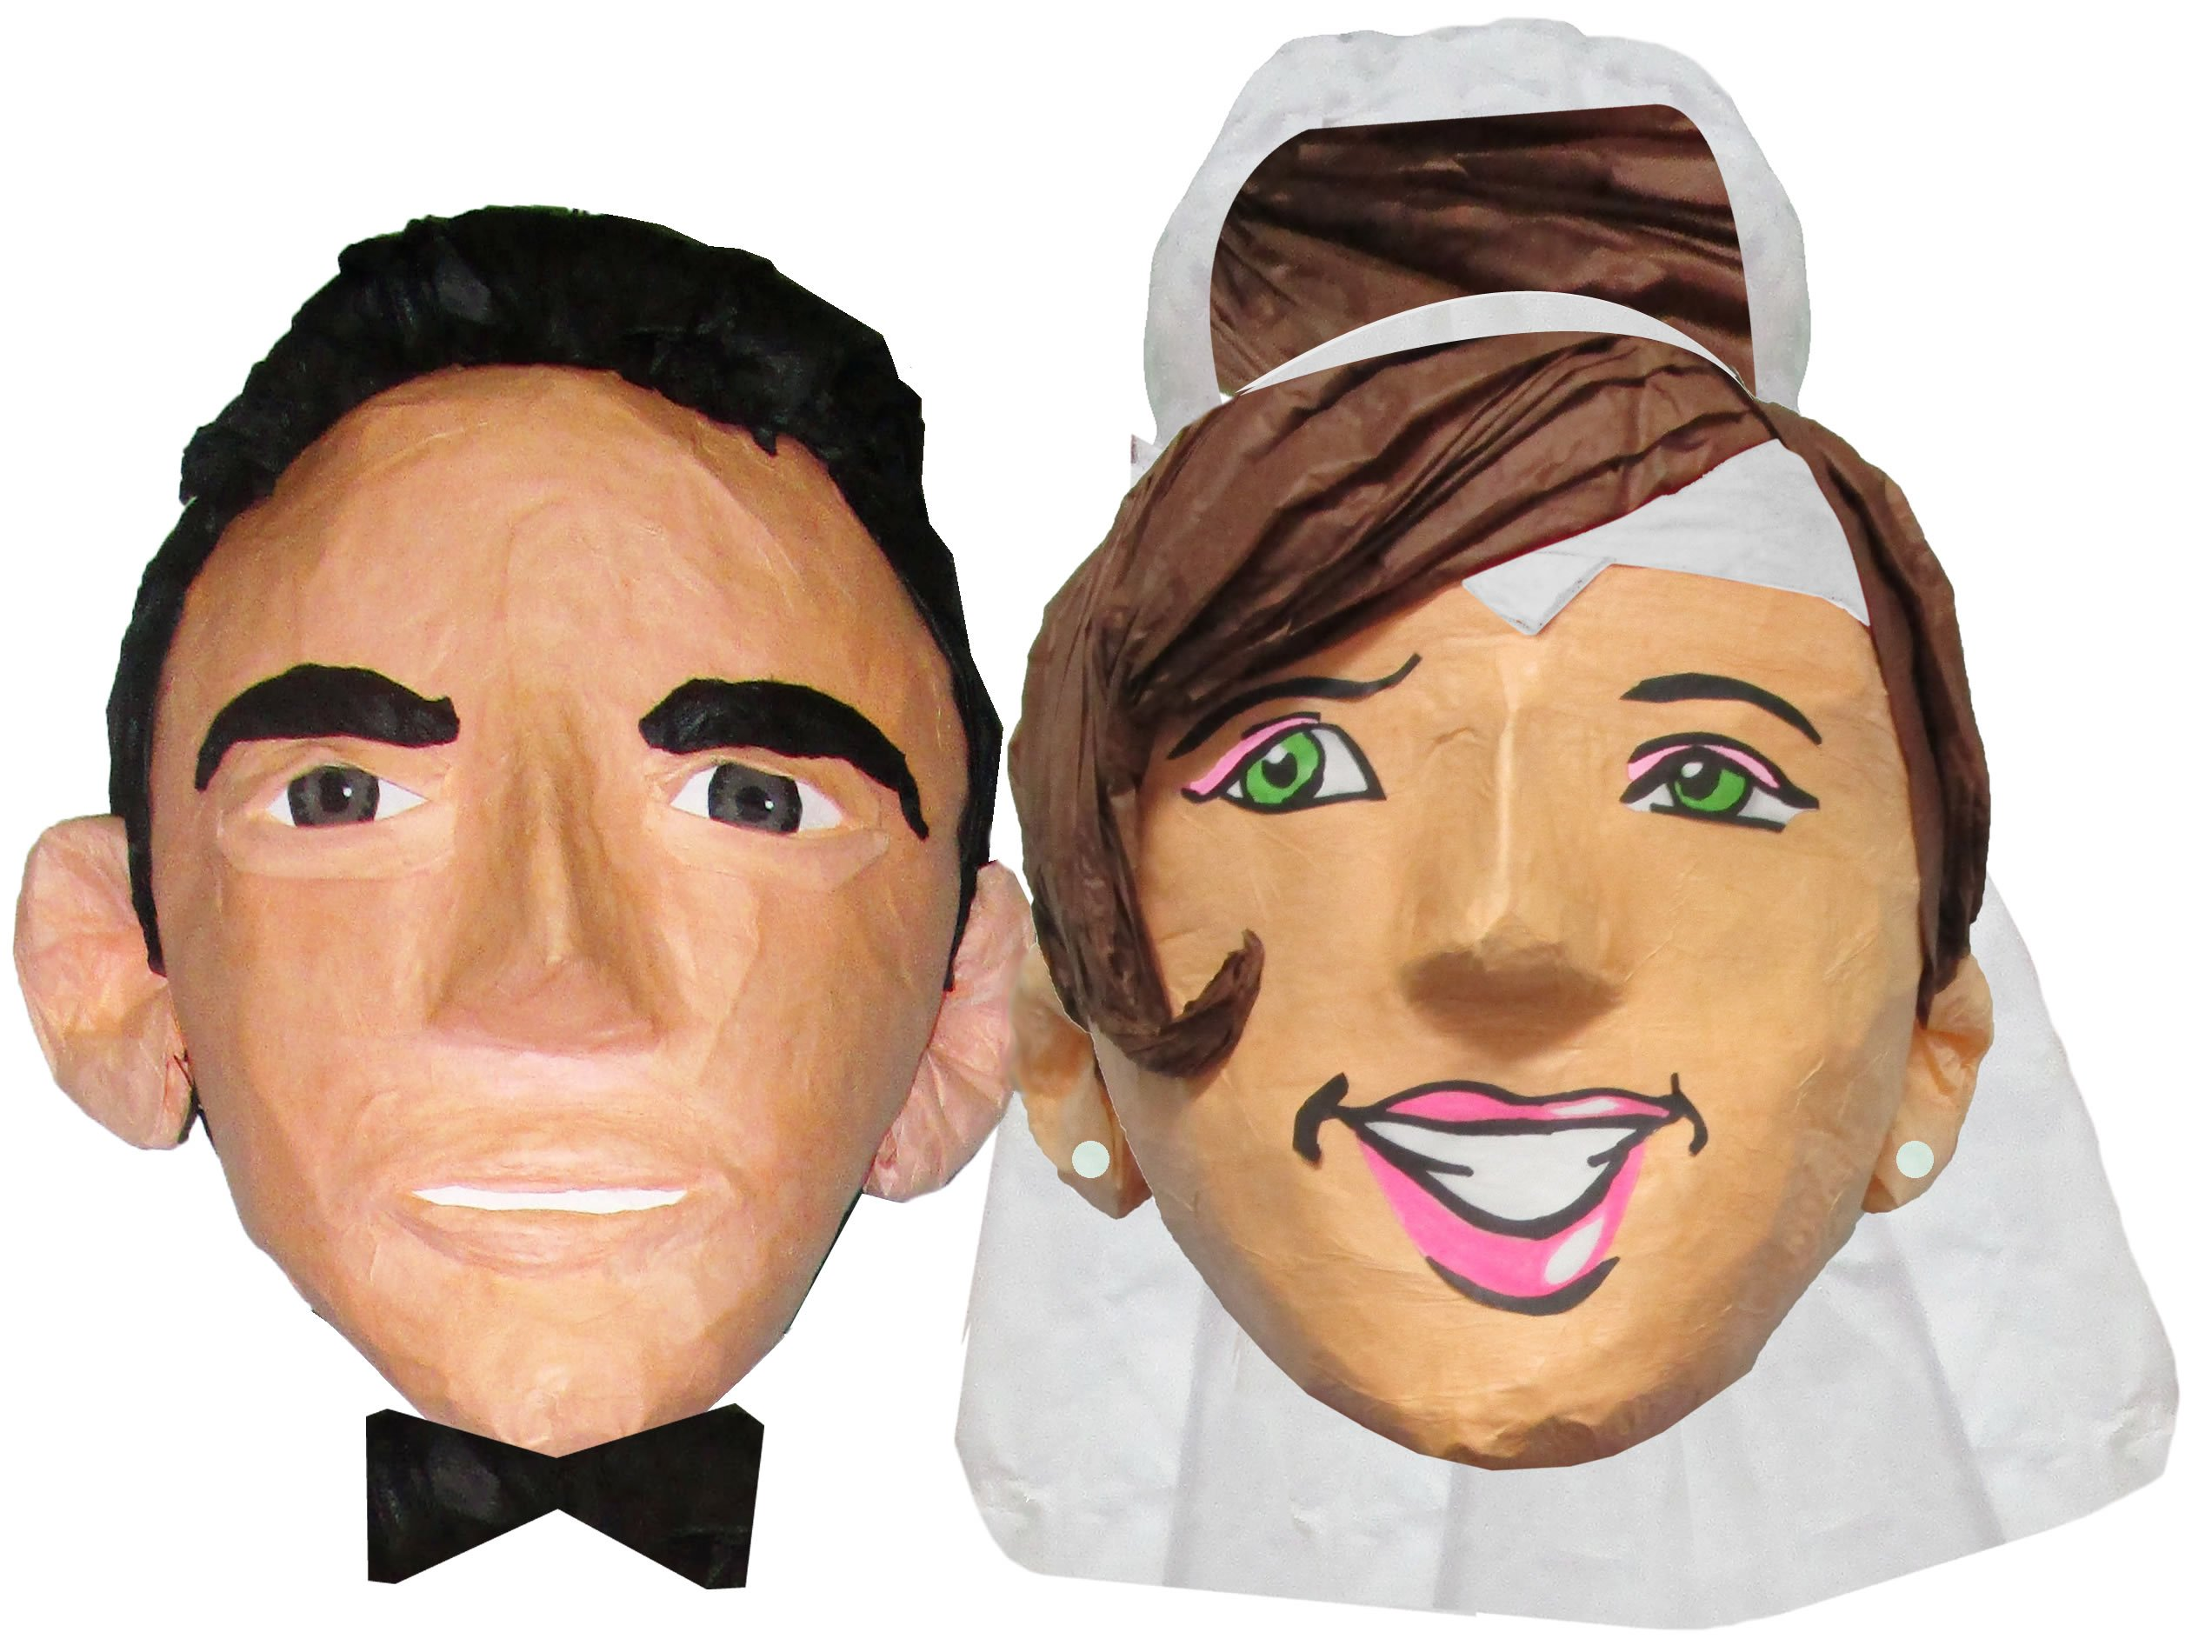 Custom Wedding Couple Bride and Groom Pinata, Photo Prop, Centerpiece Decoration and Party Game (Super Size, Heads)